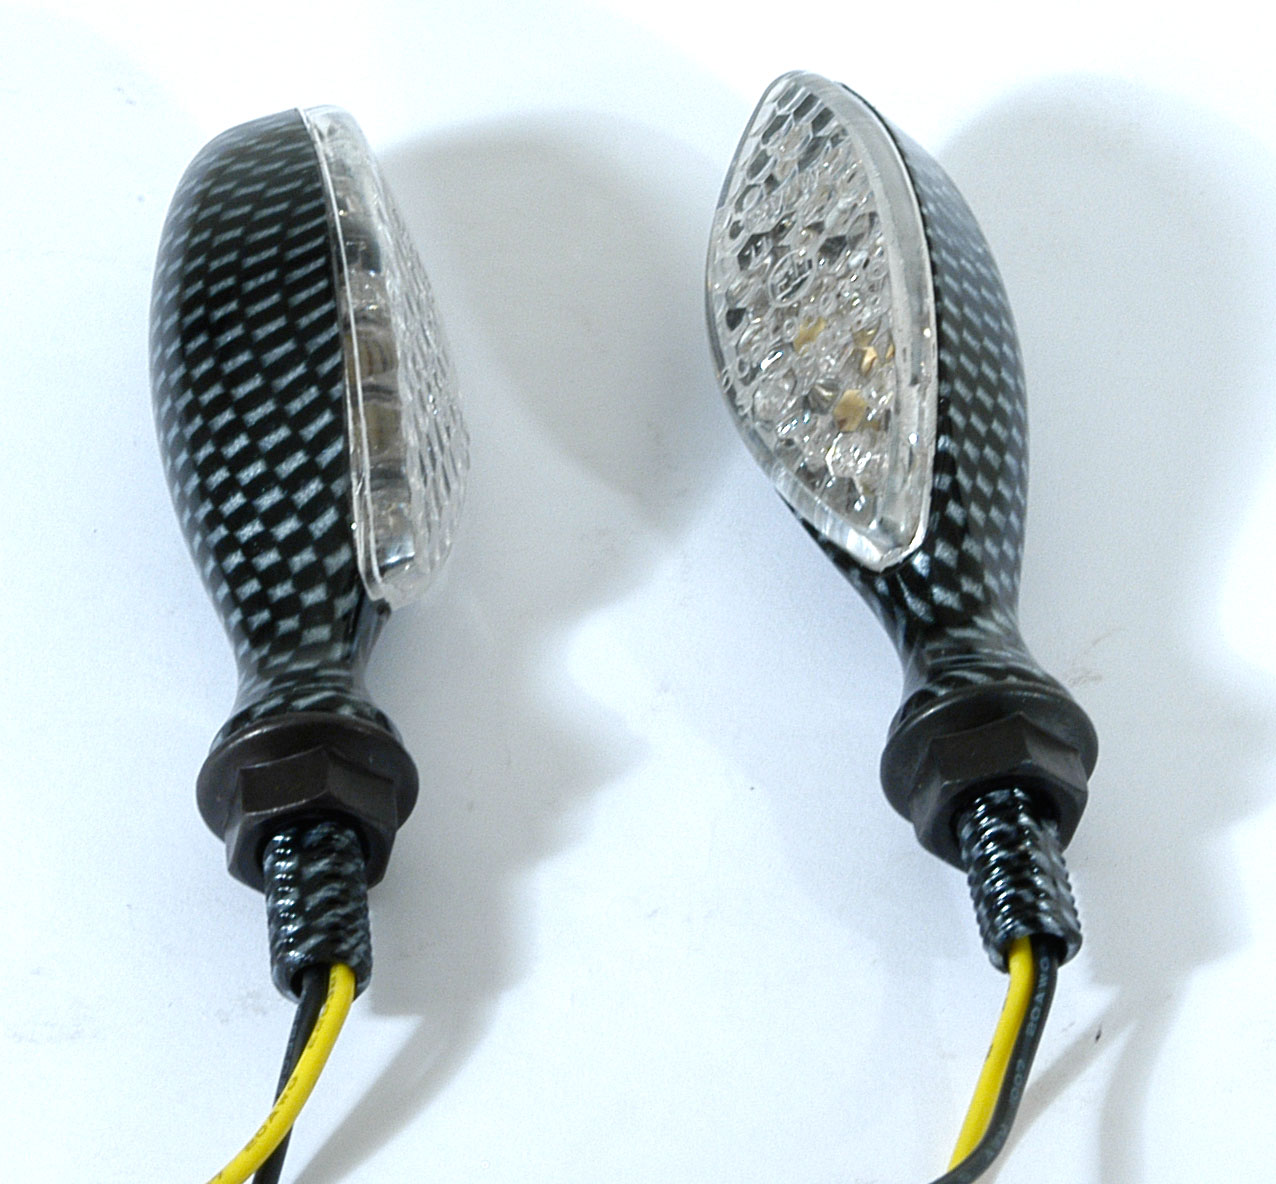 01135183R OCCHIO FALCO LED CARBON LOOK